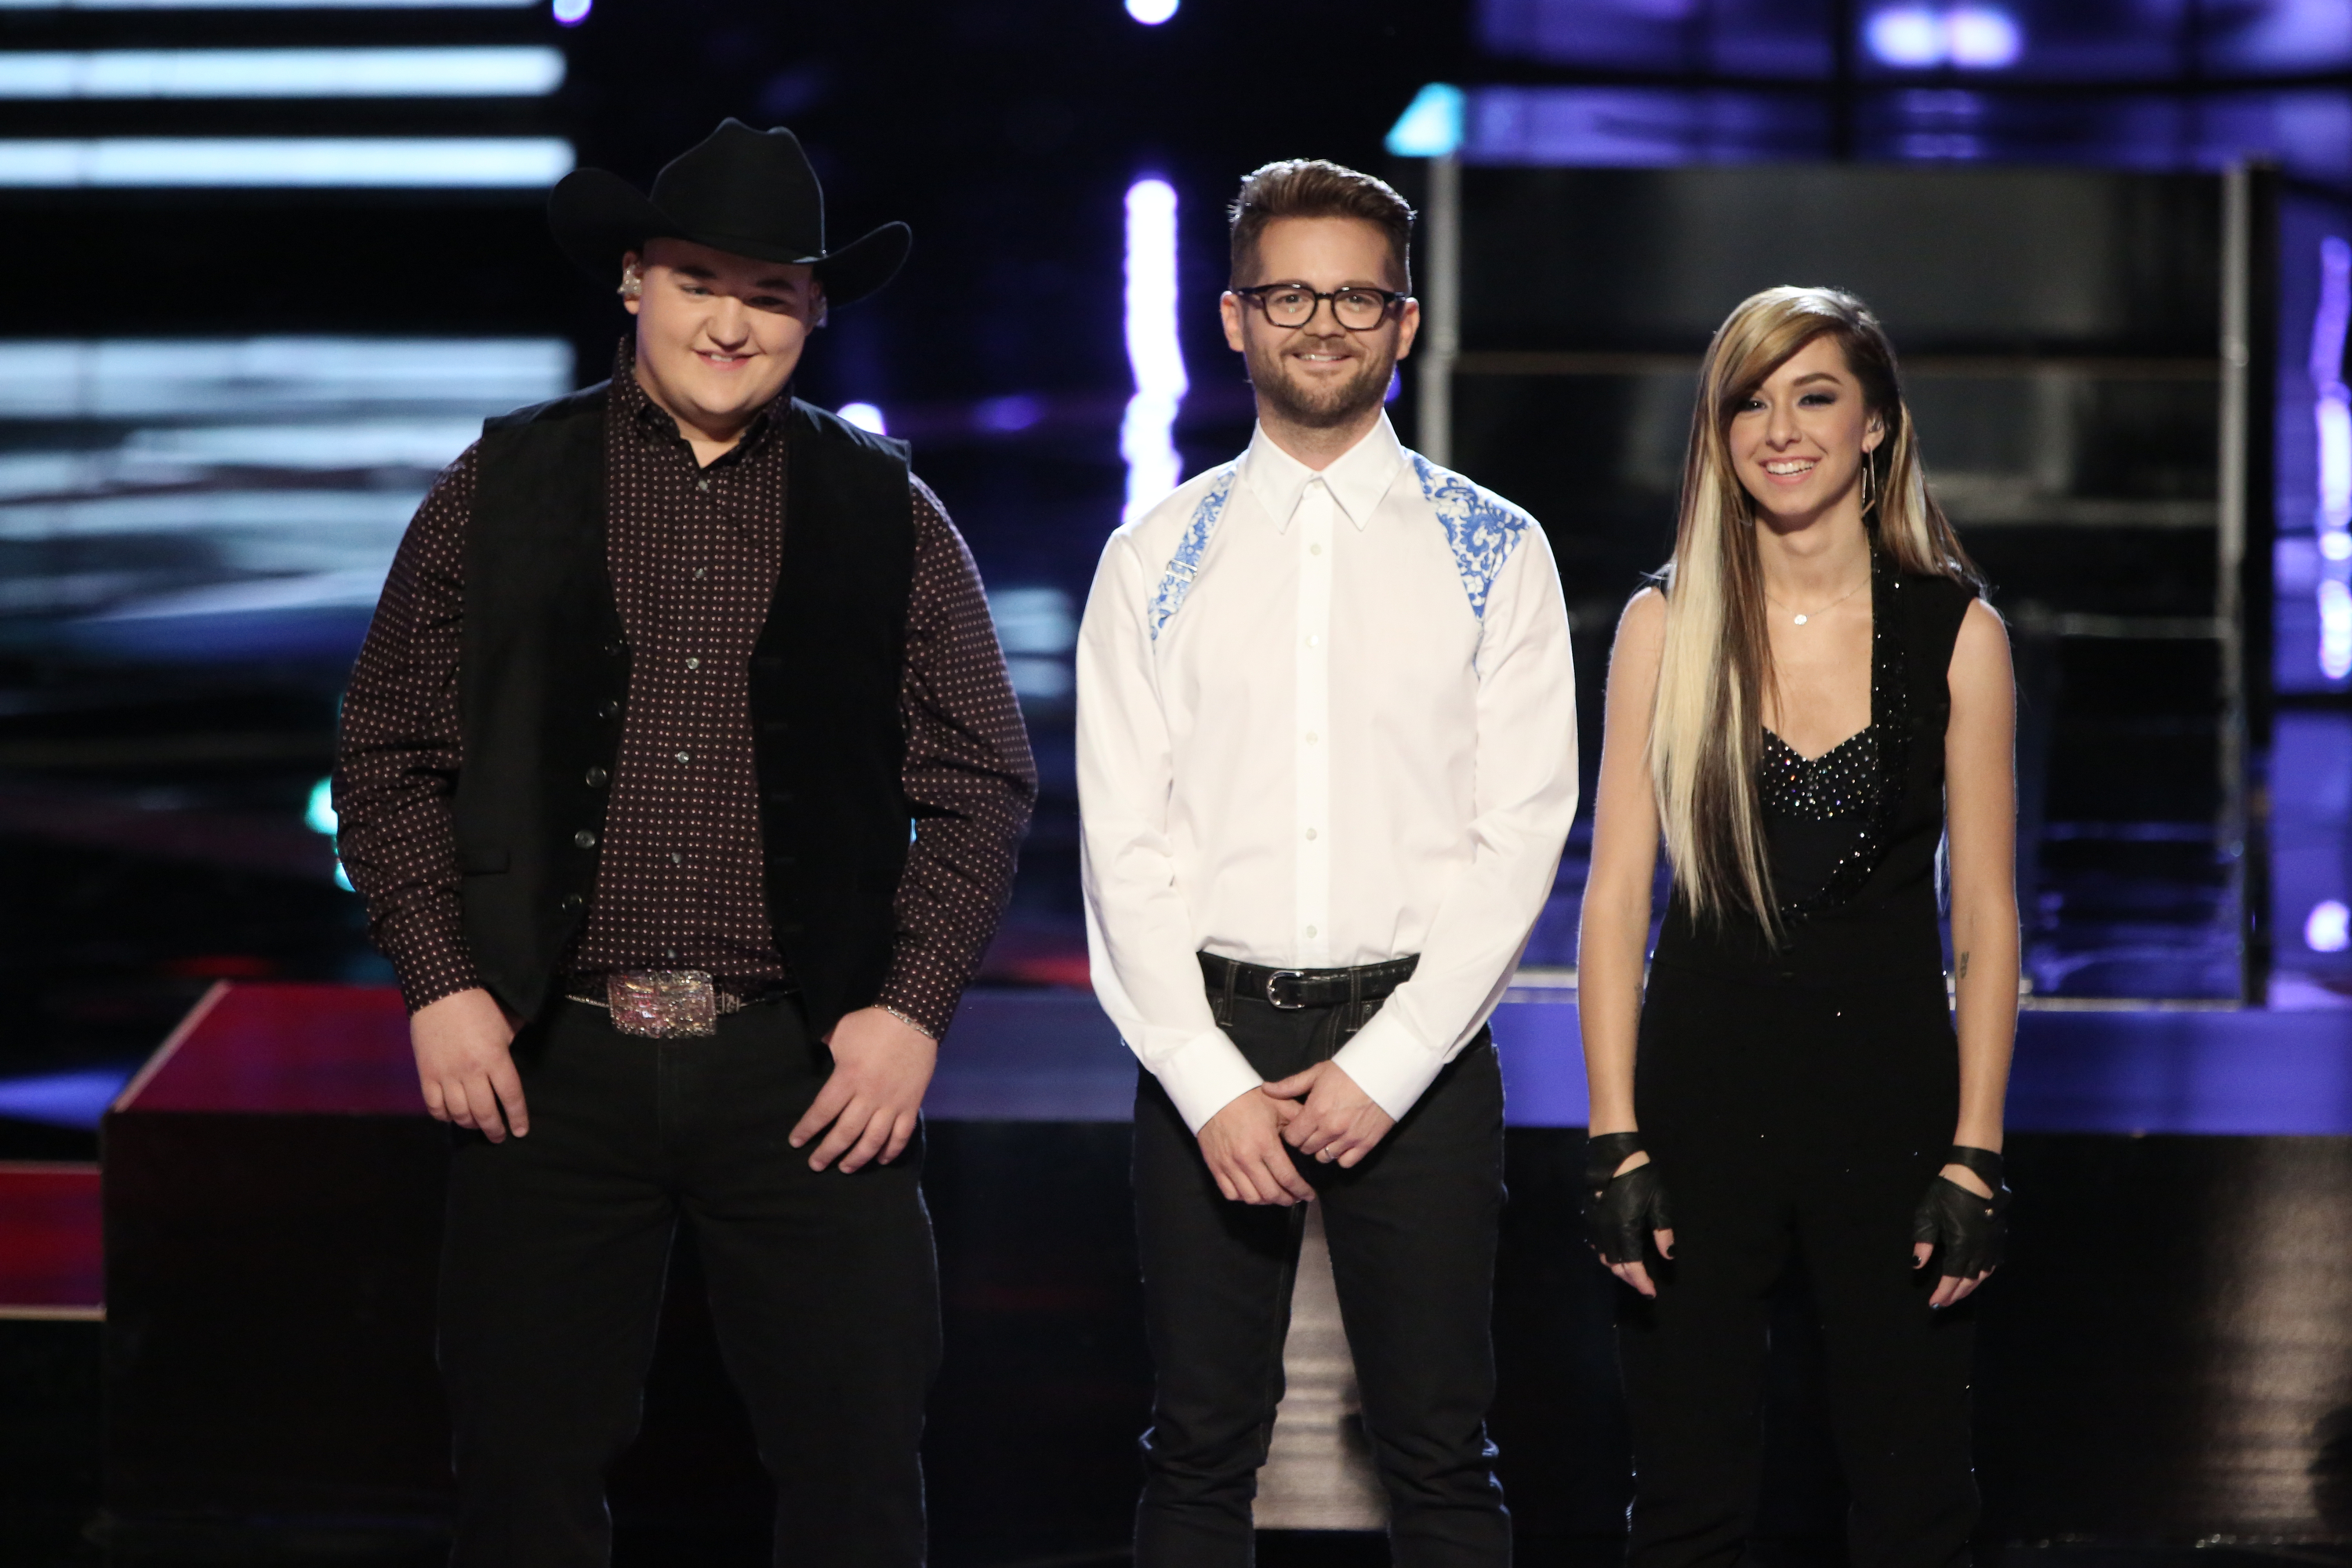 Josh Kaufman Wins 'The Voice' Season 6 | Access Online